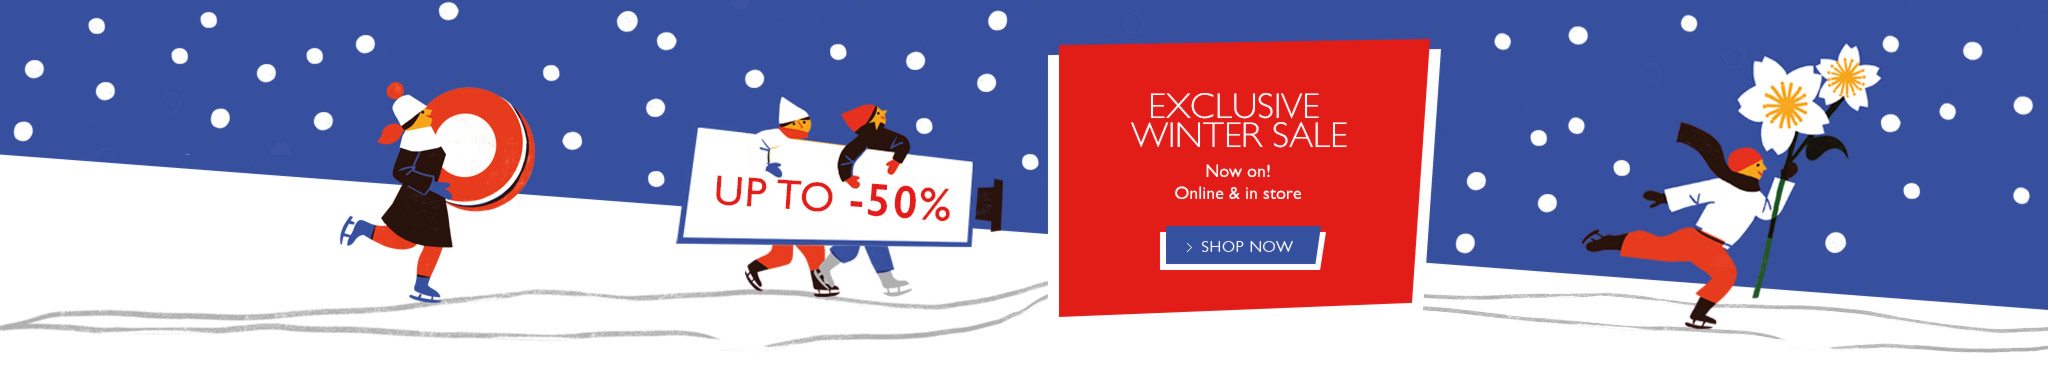 Winter Sales Are Here!